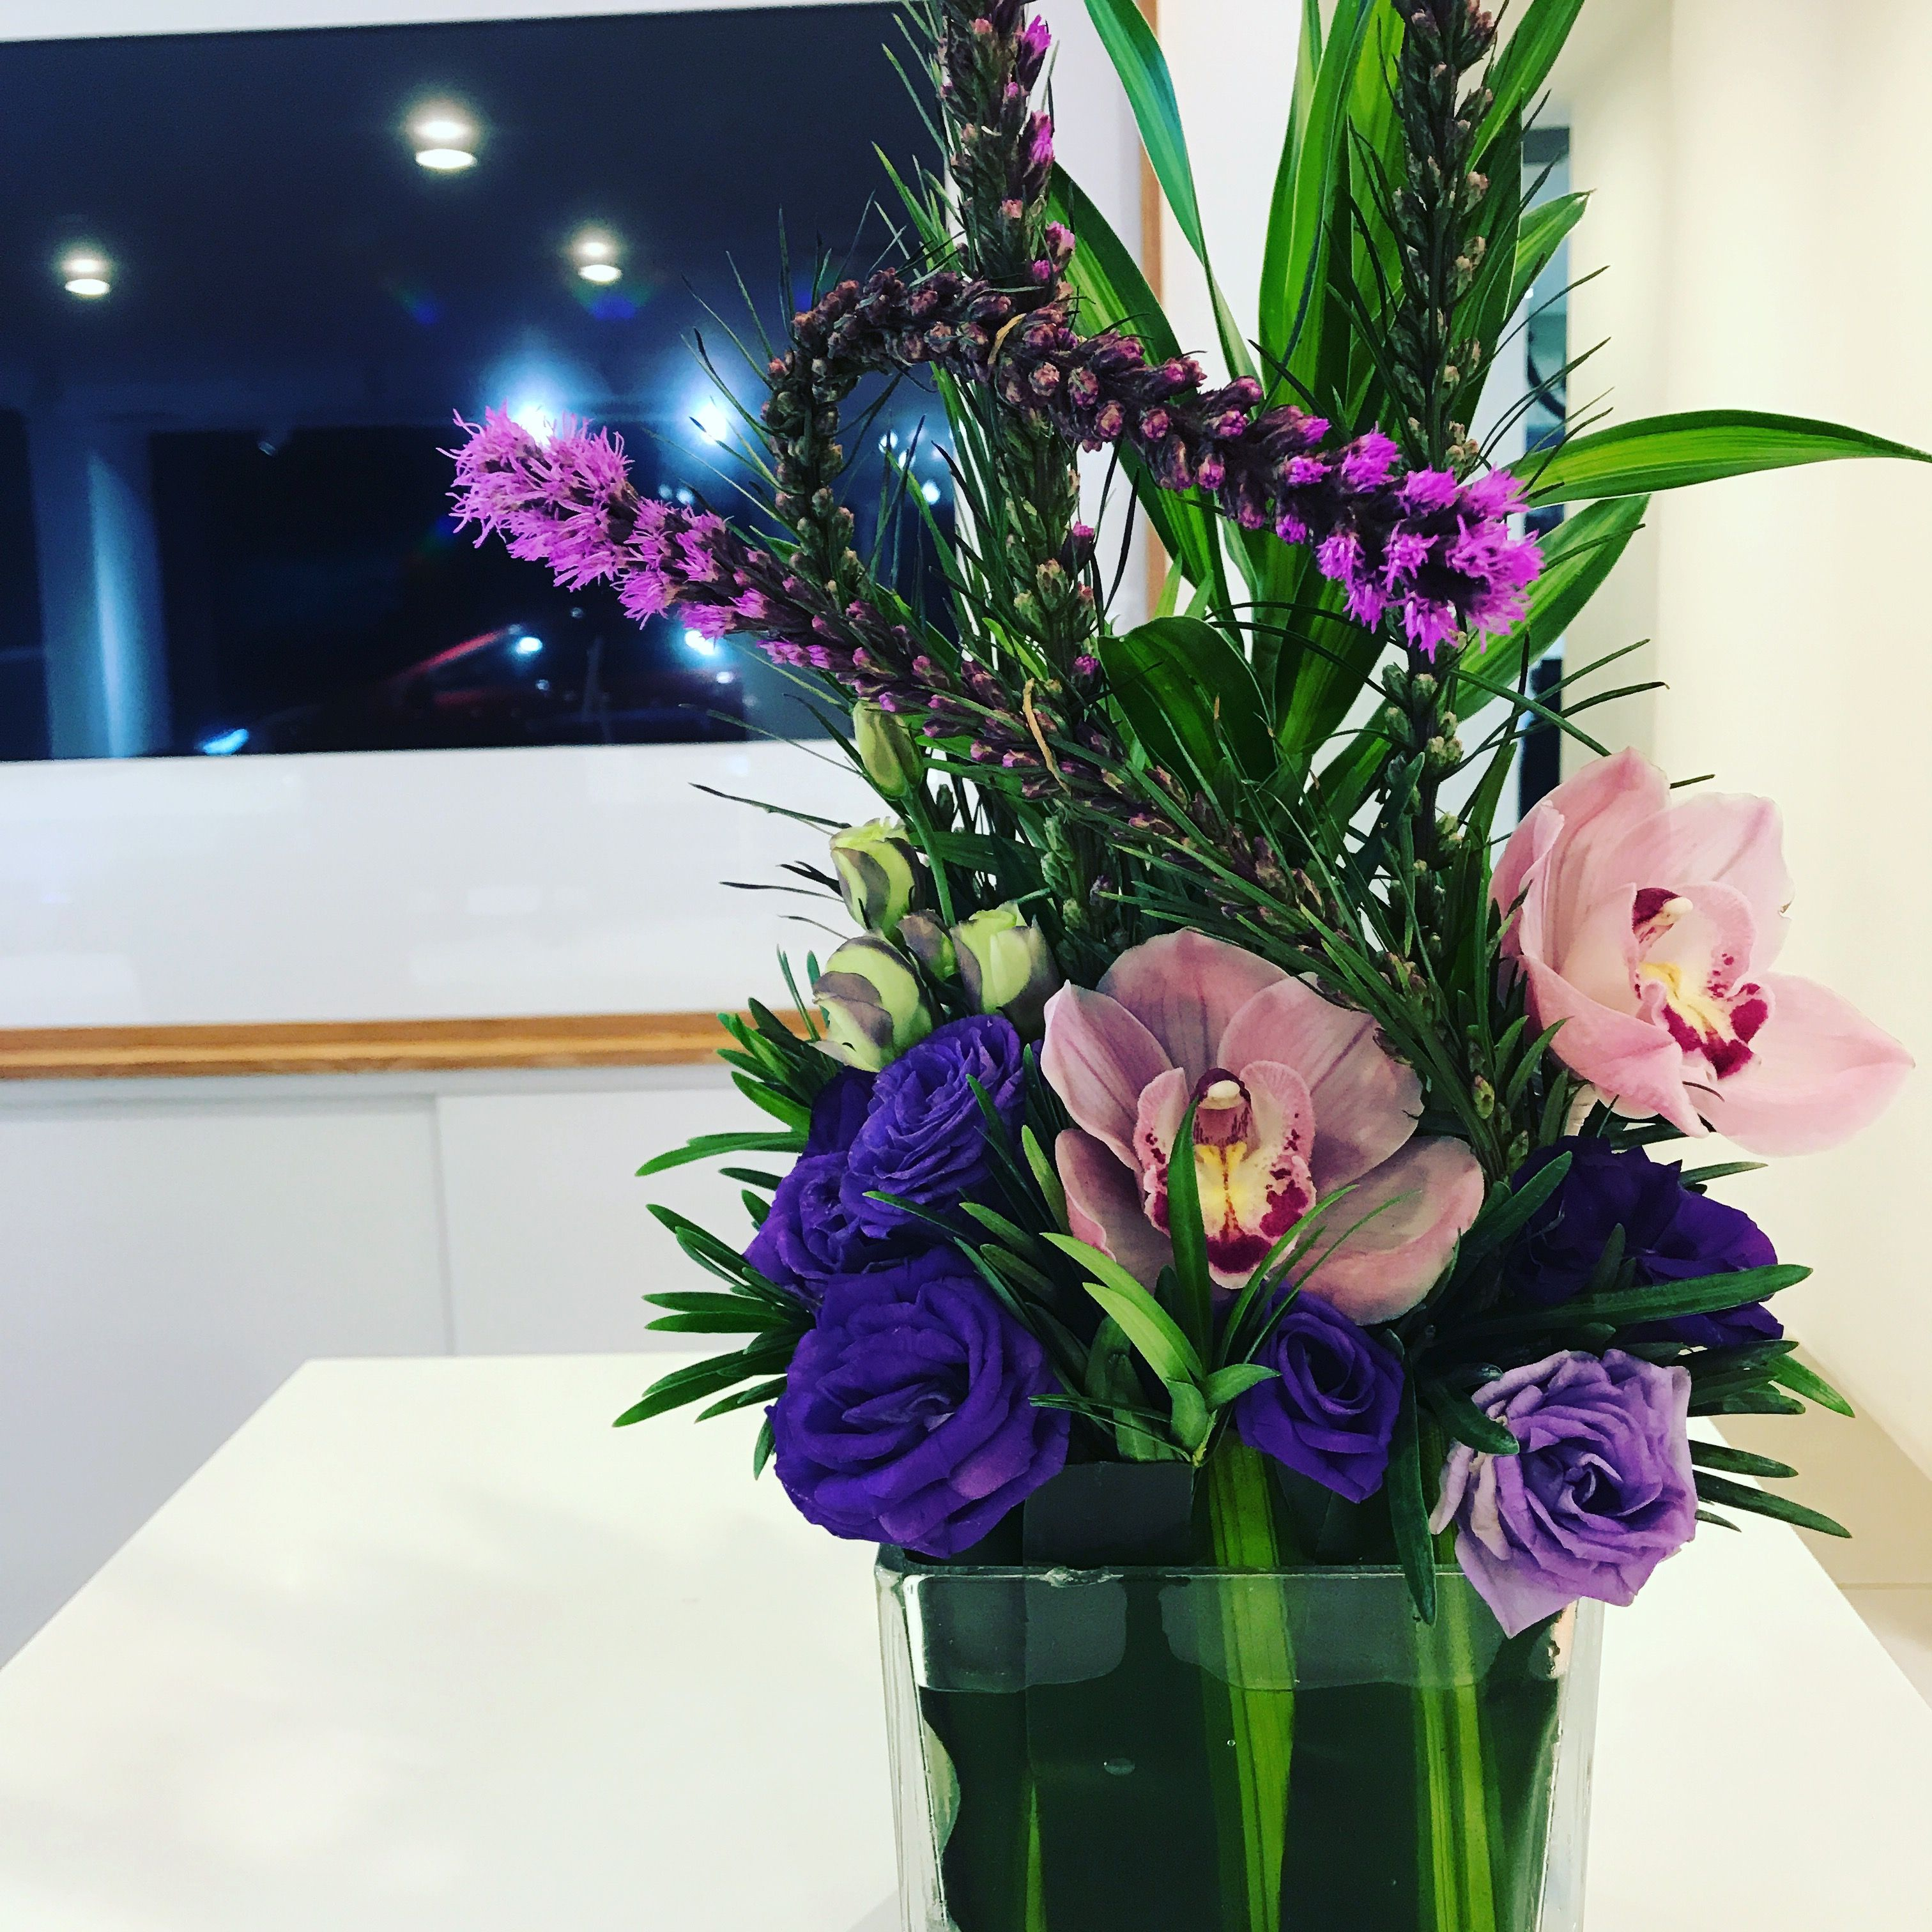 Florist Singapore Creation Office Counter Flower To Brighten Your